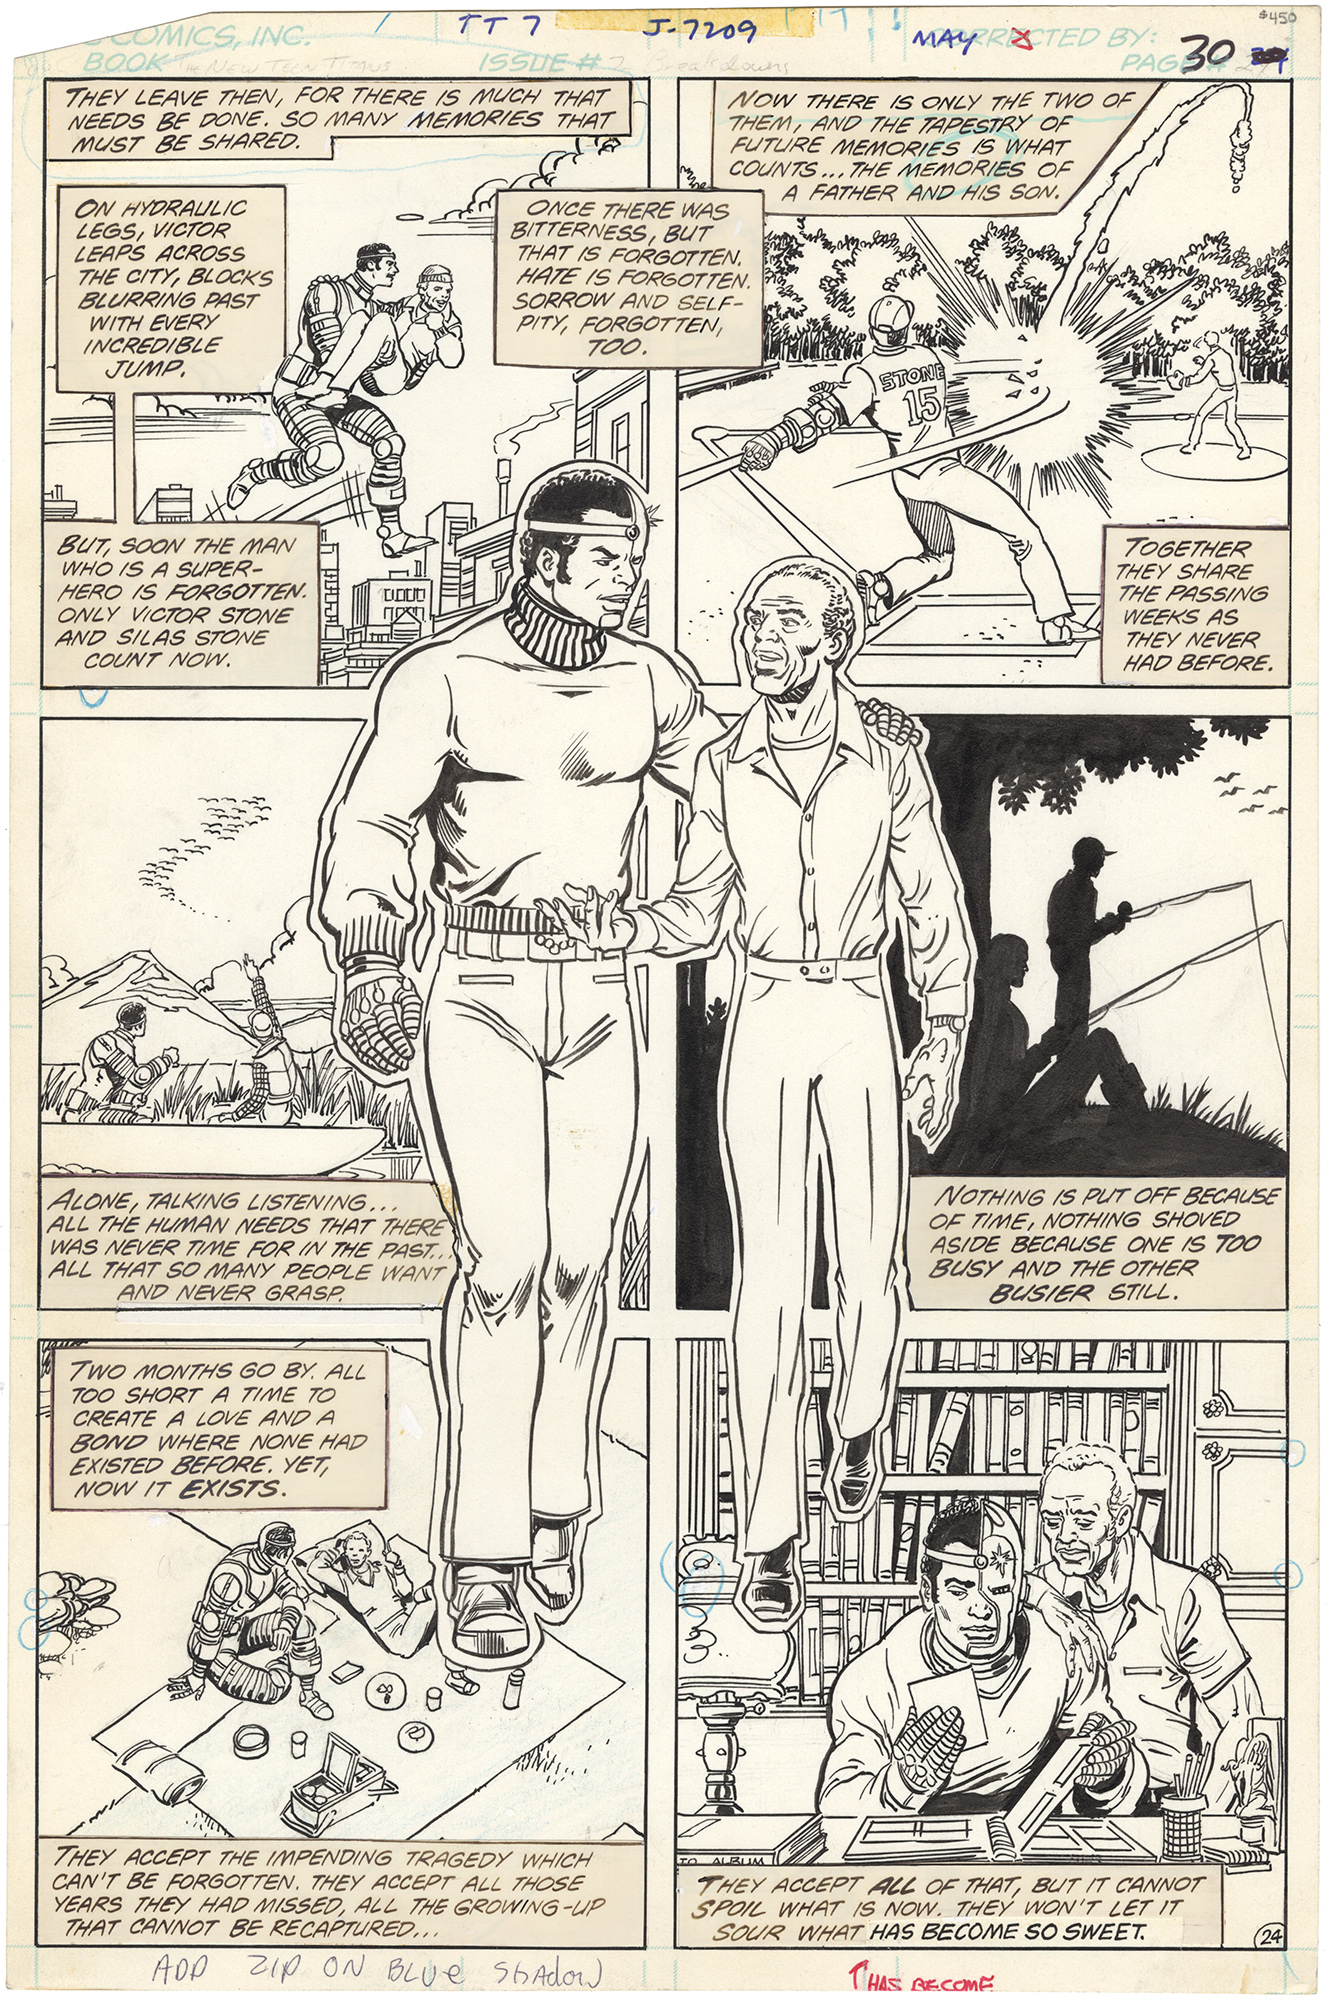 New Teen Titans #7 p24 (Cyborgs fathers end)